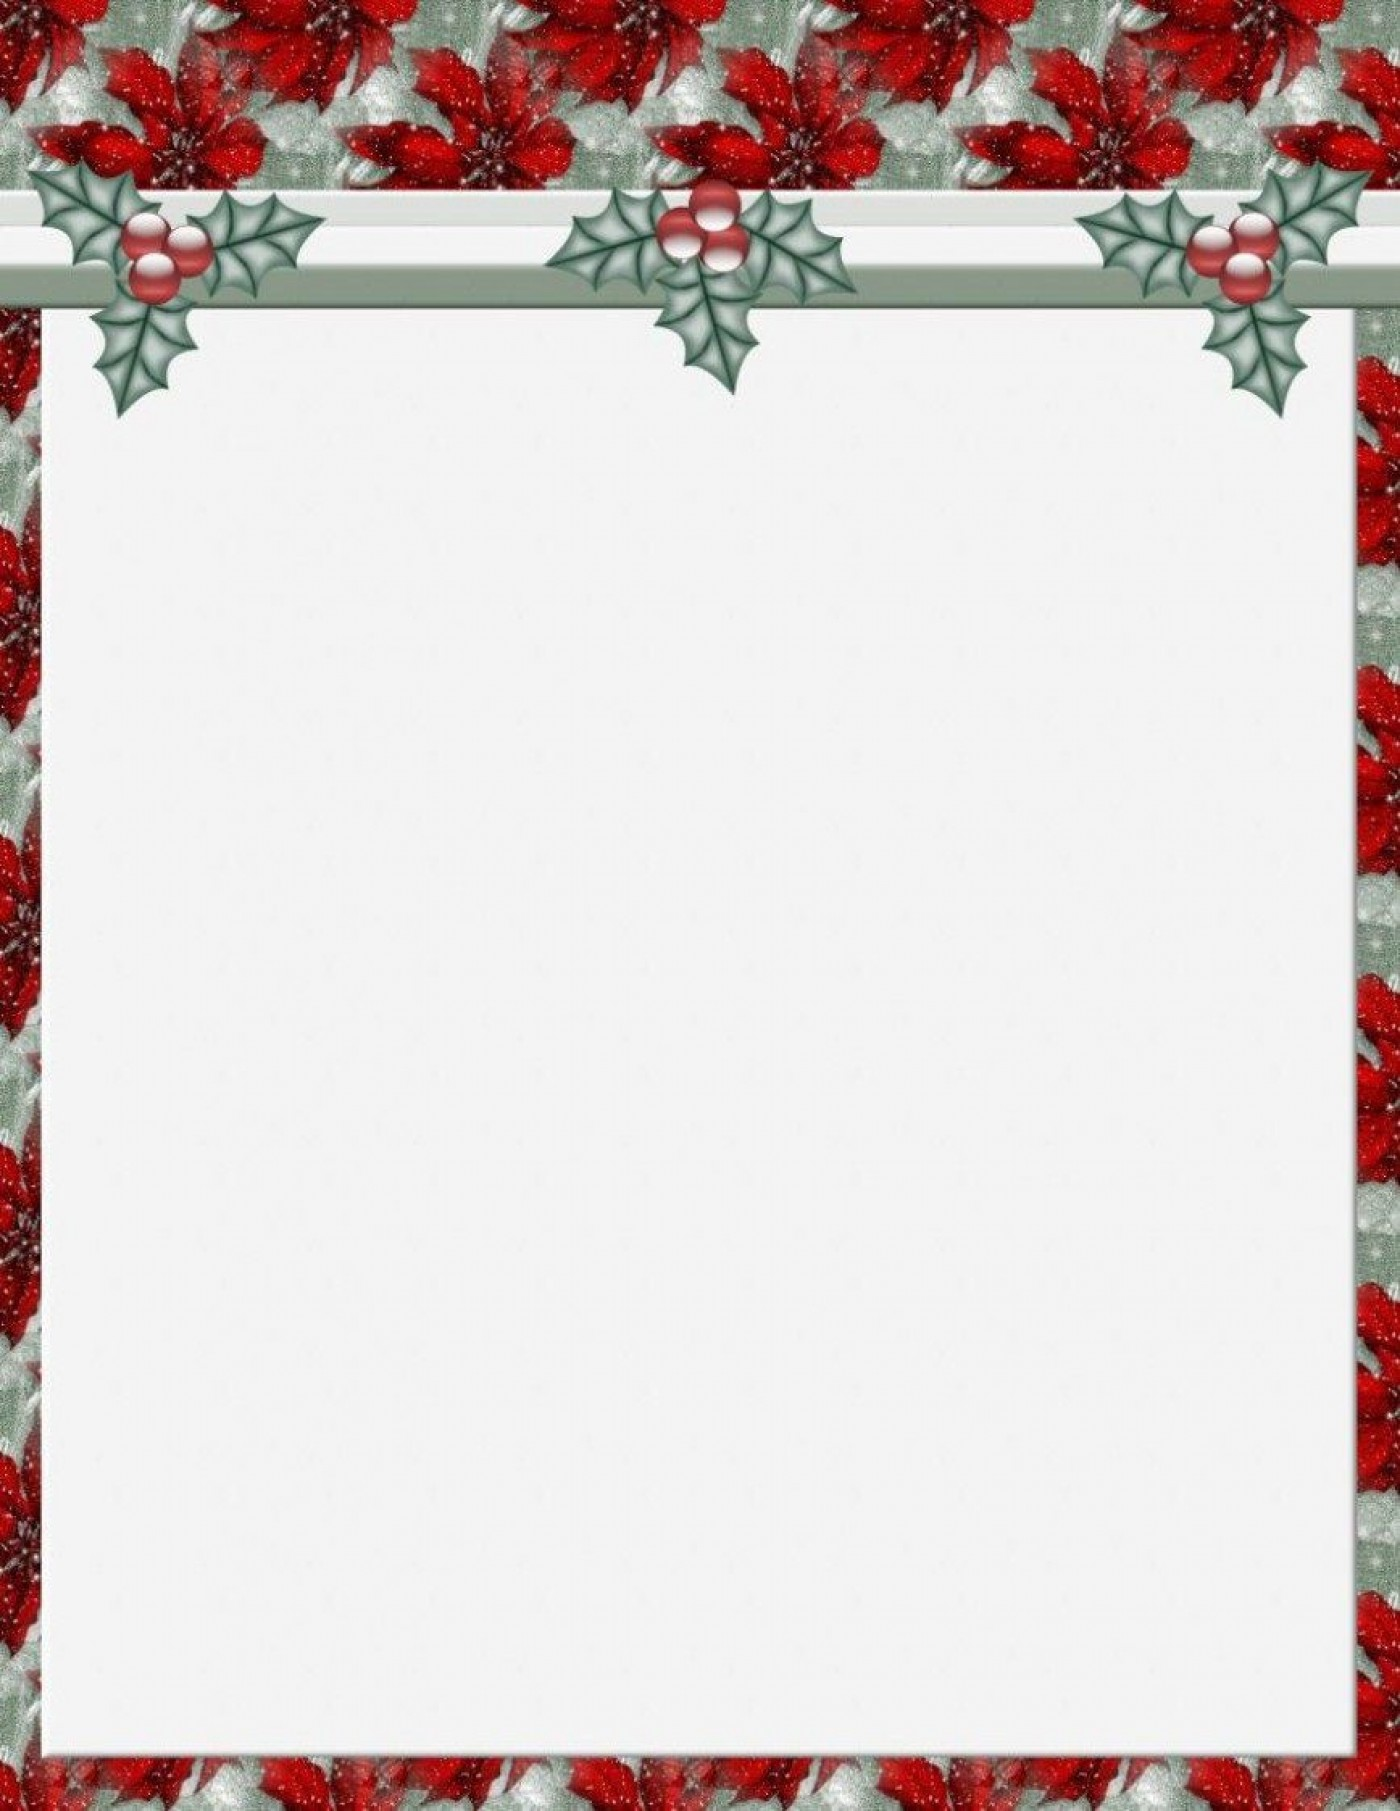 011 Stunning Free Holiday Stationery Template For Word Highest Clarity 1400